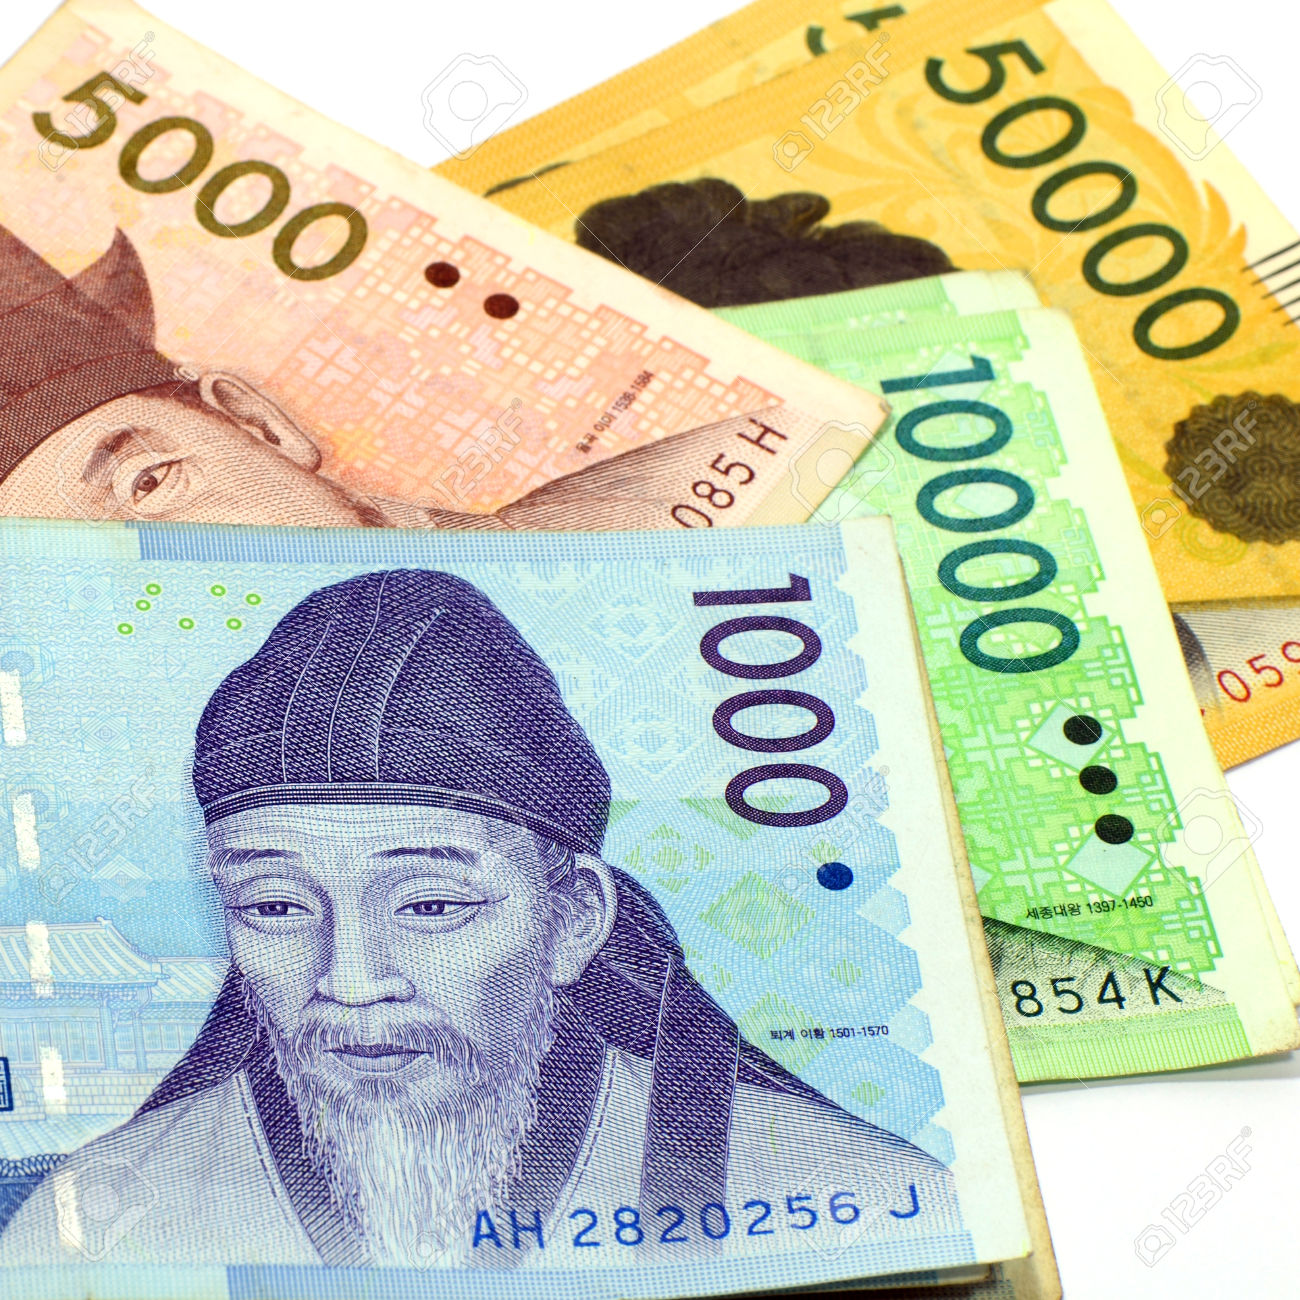 Current Use Of South Korean Won Currency In Different Value Stock.